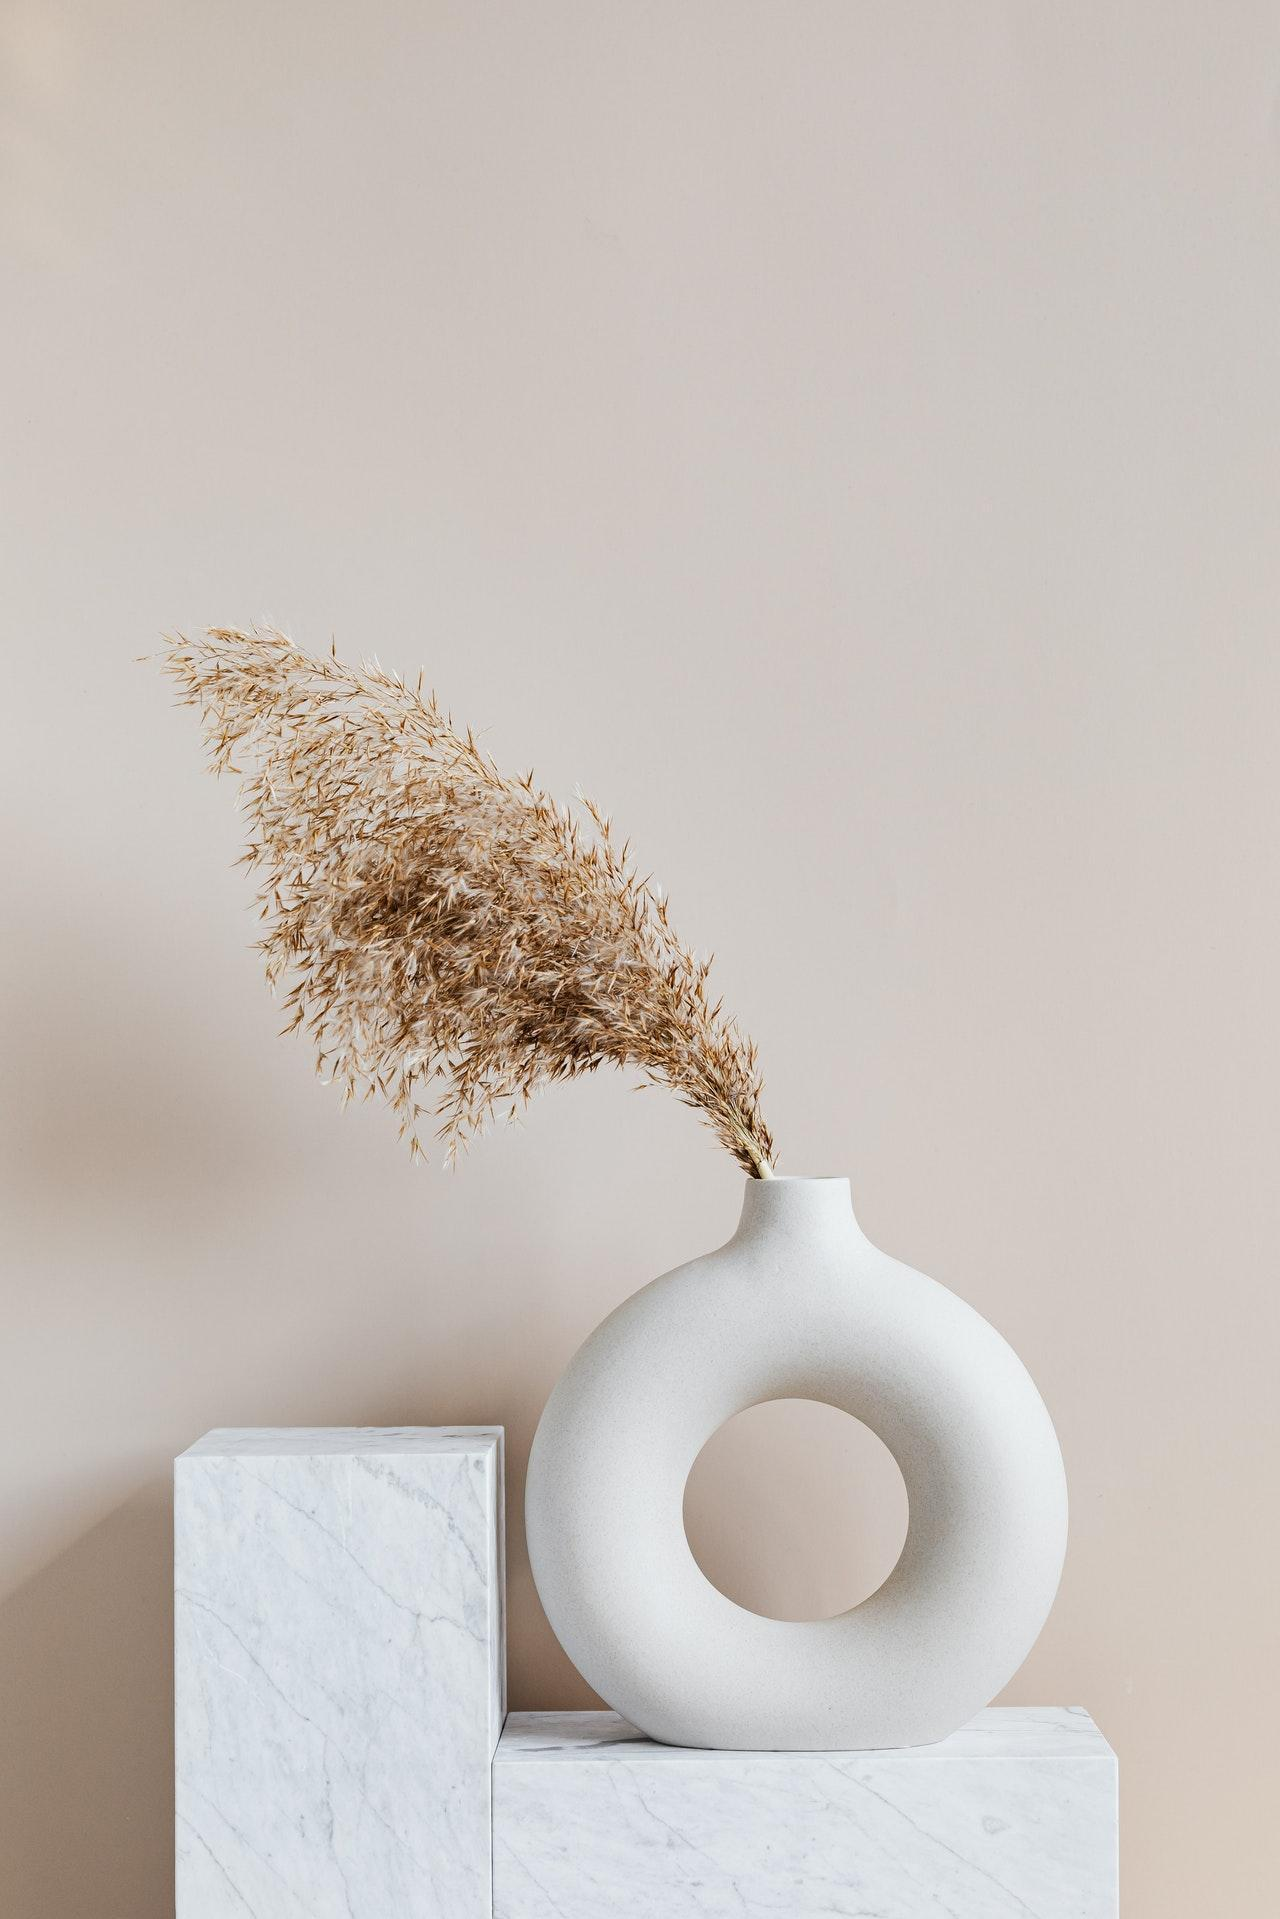 Vase with dry sere herbs